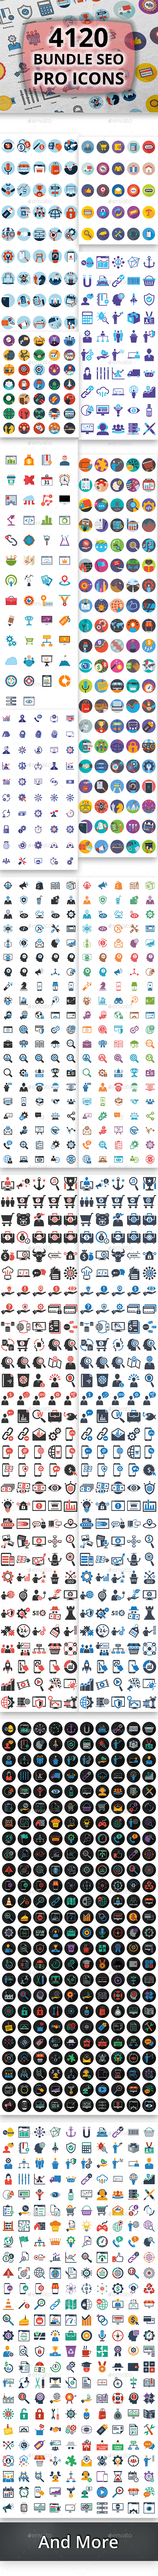 GraphicRiver 4120 Bundle Seo Pro Icons 21151761